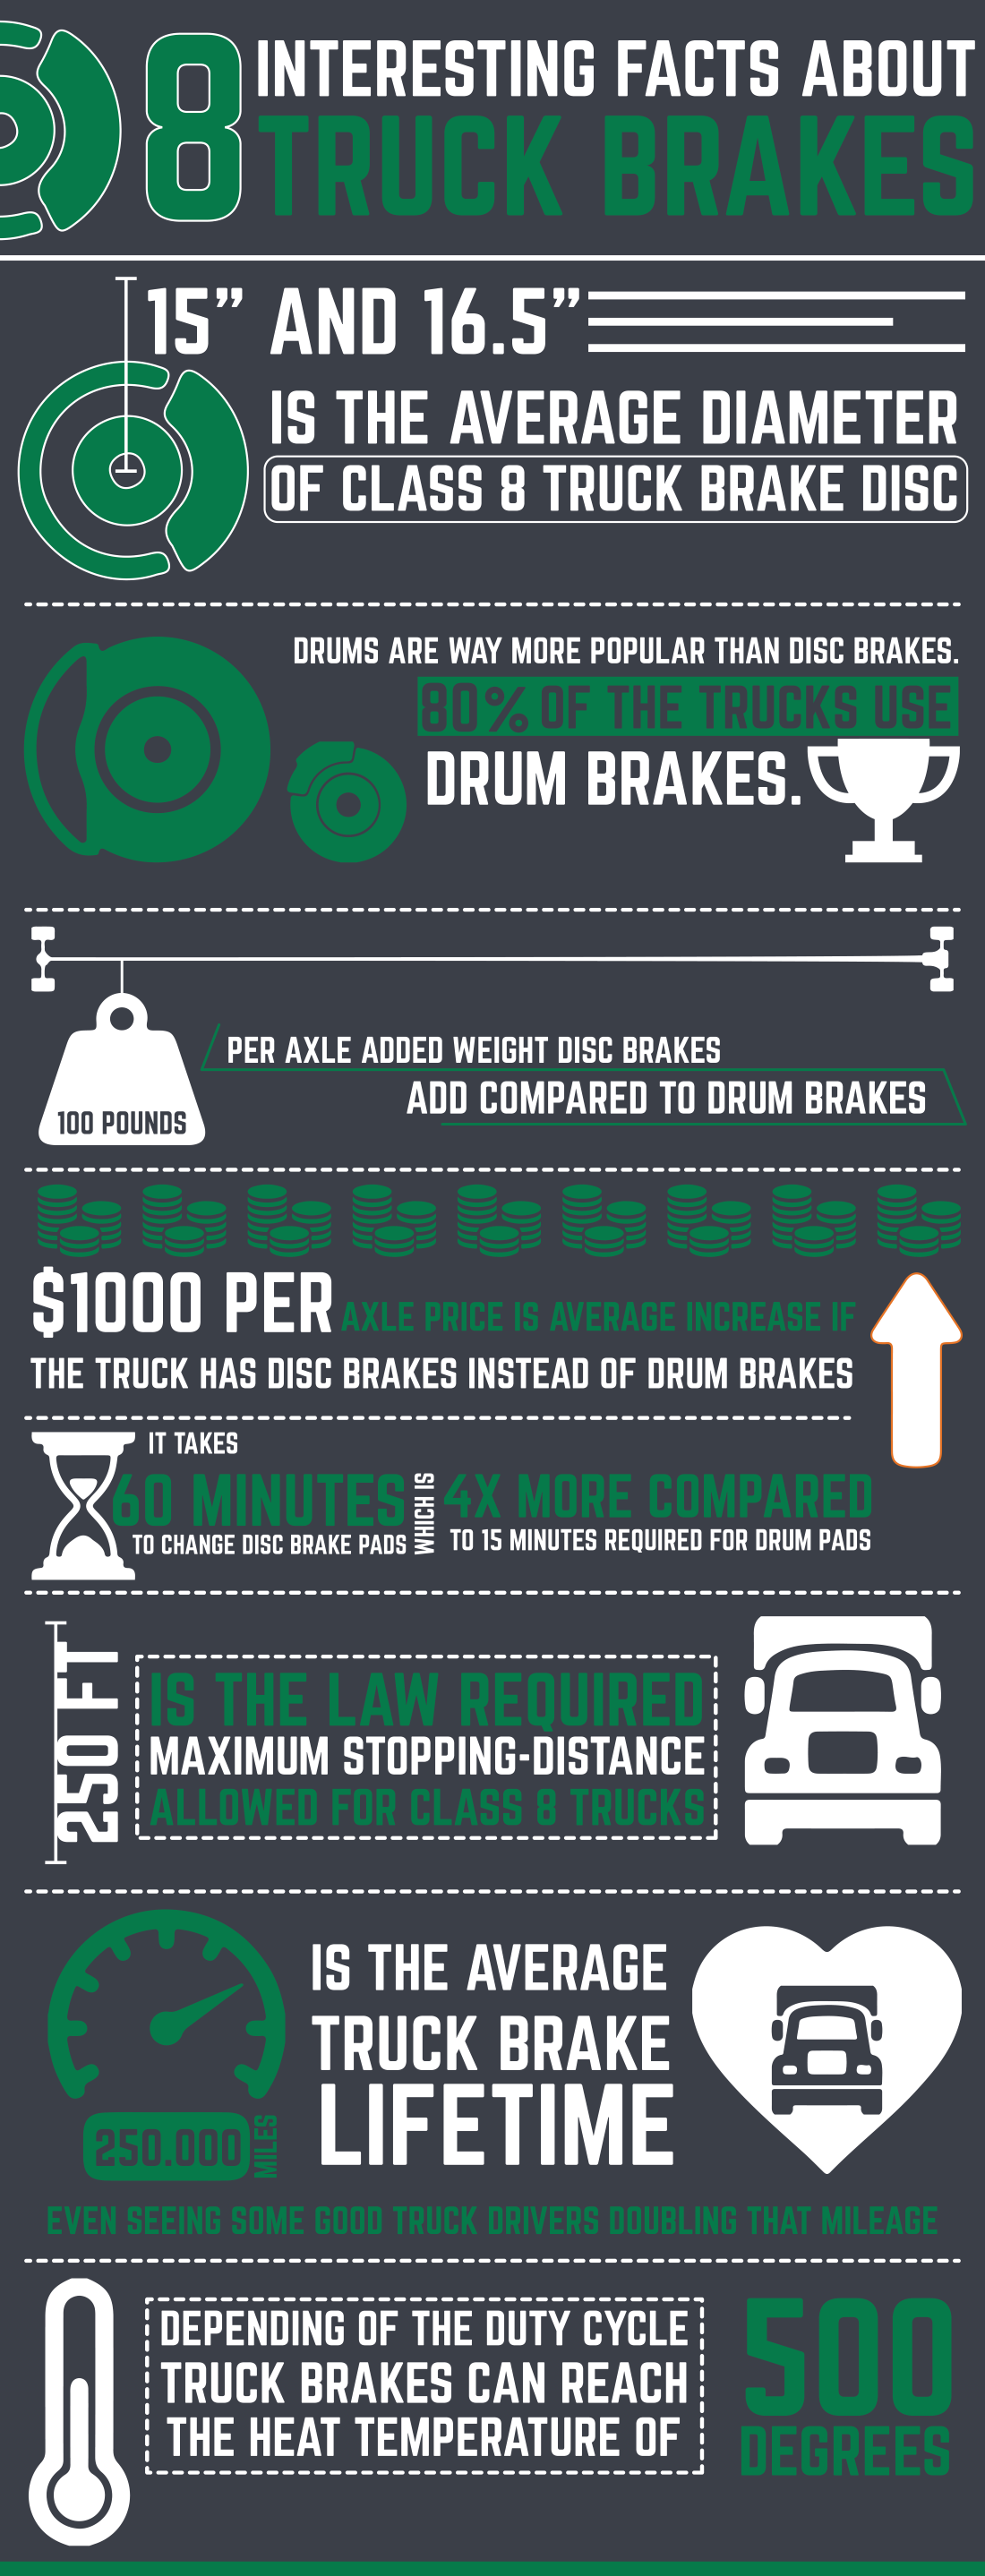 8 Interesting Facts About Truck Brakes